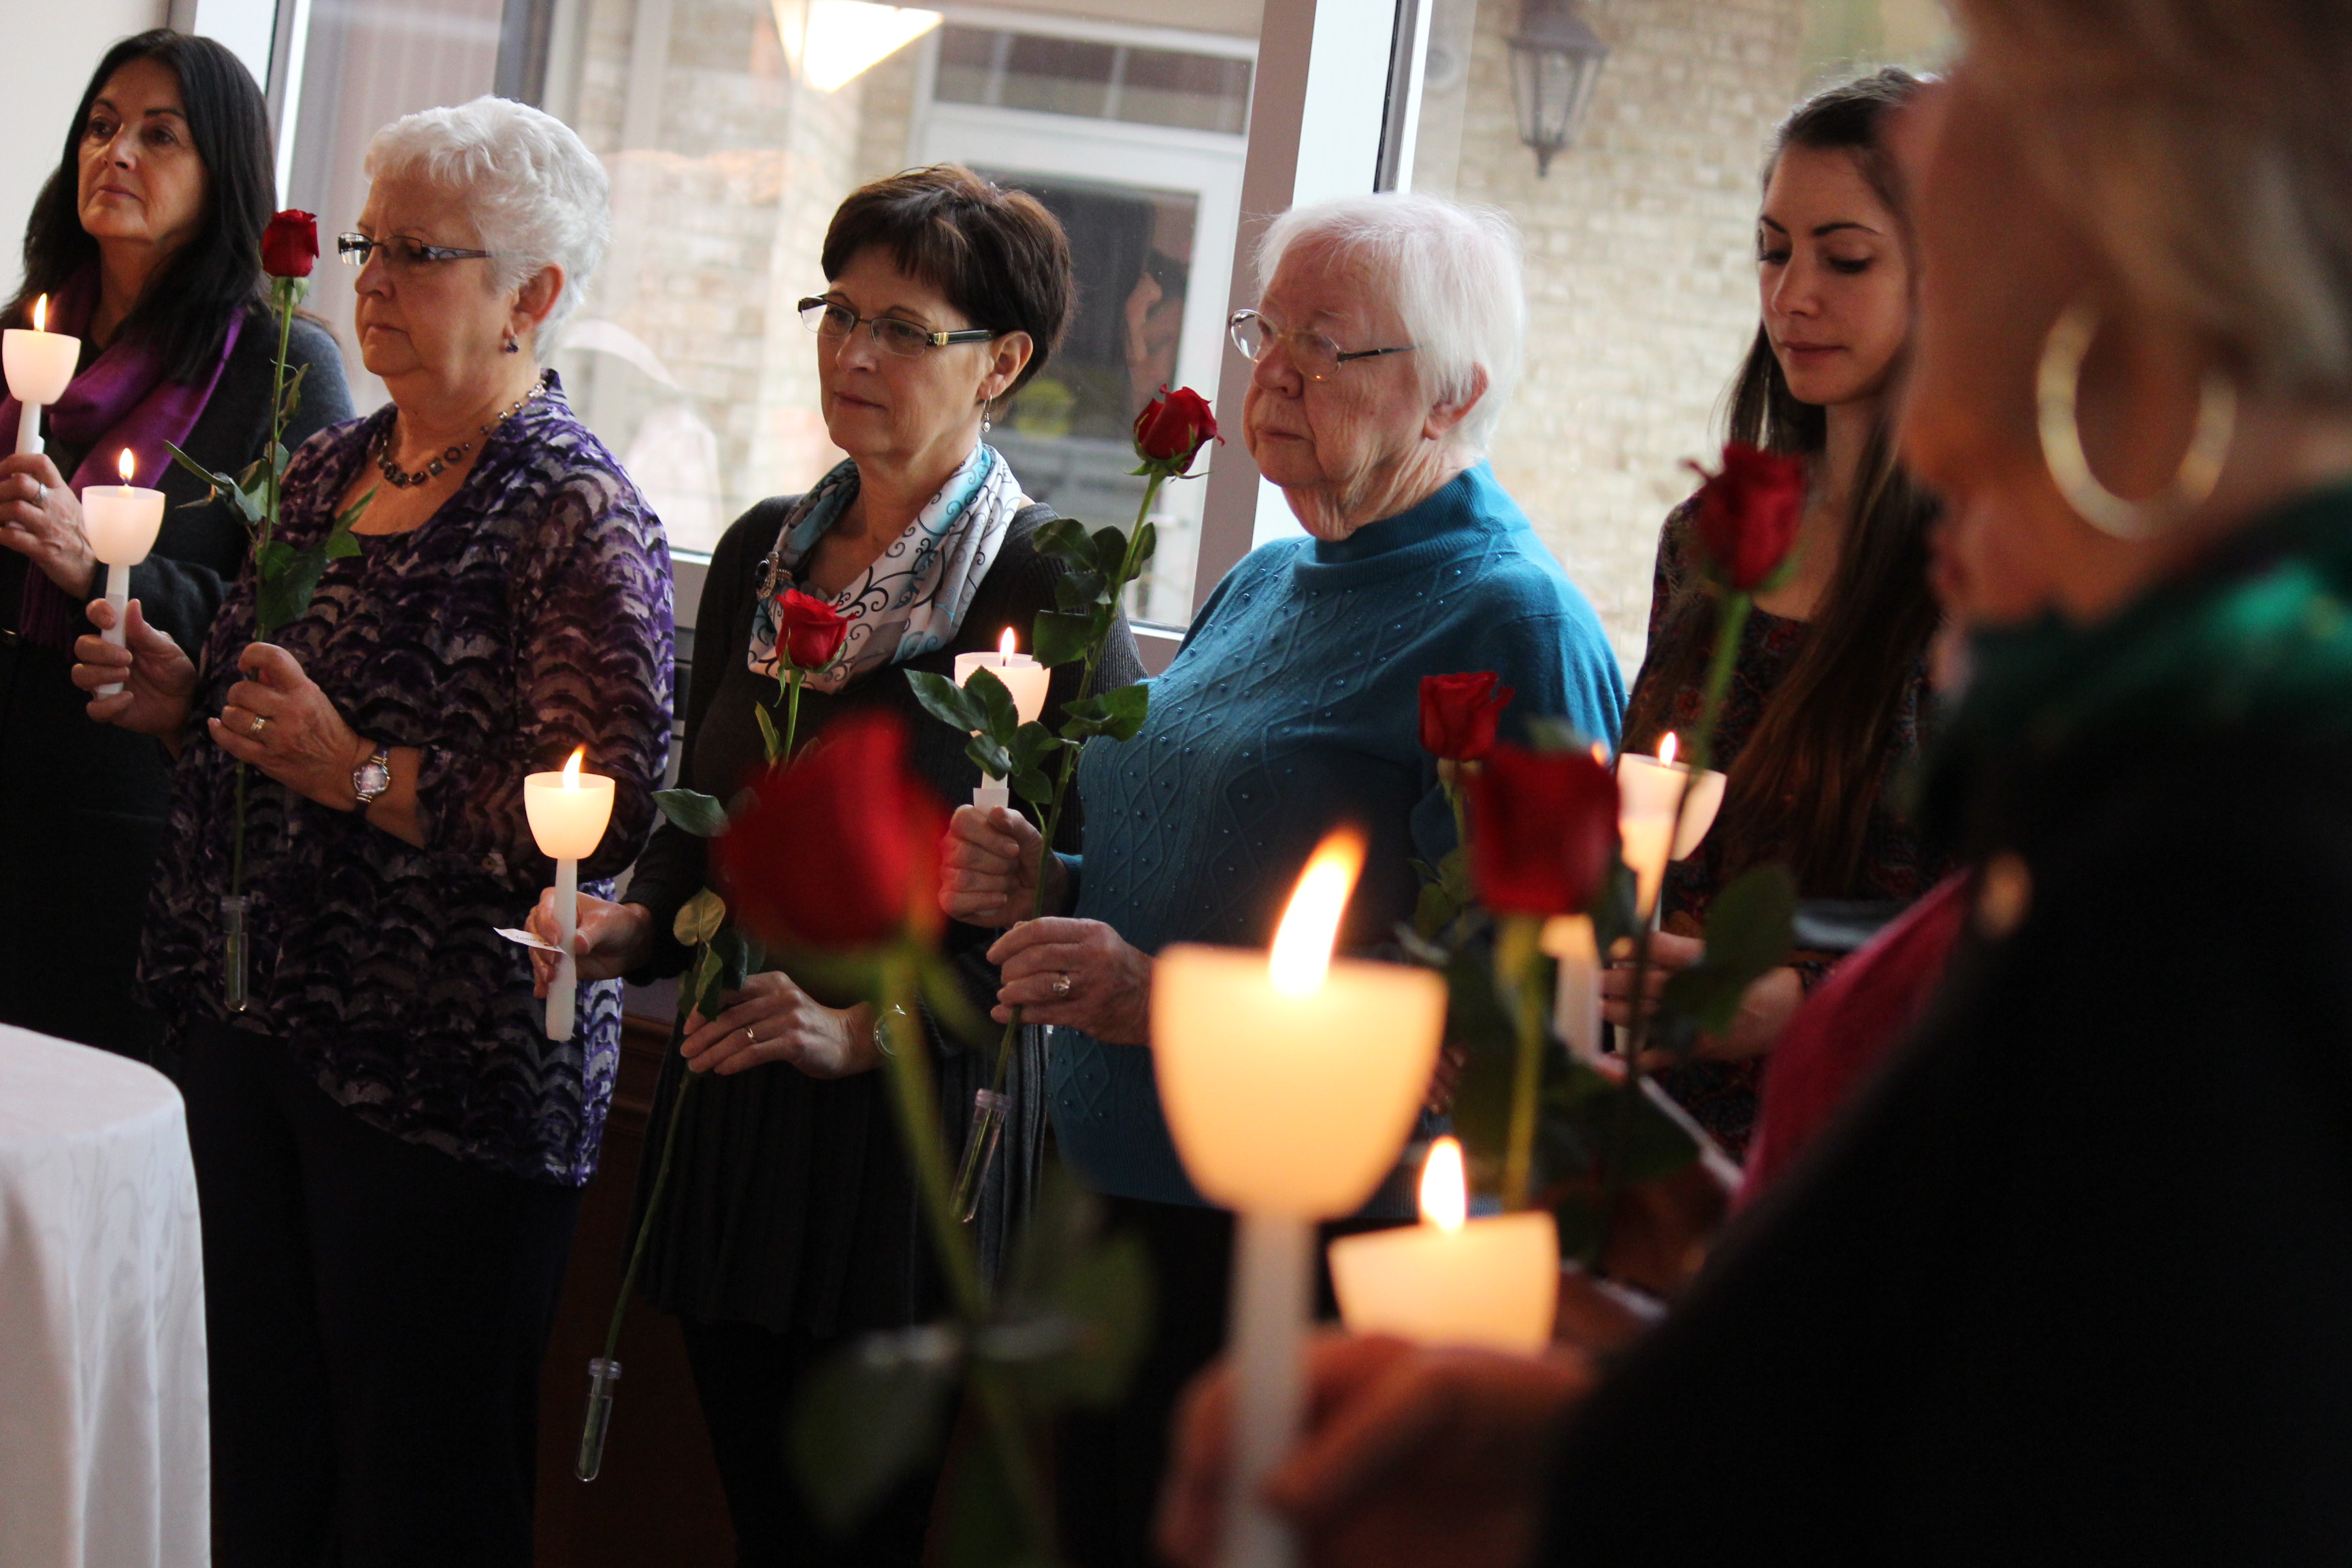 A ceremony remembering the 14 women killed in the Montreal Massacre was held in Chatham on December 6, 2014. (Photo by Jason Viau)